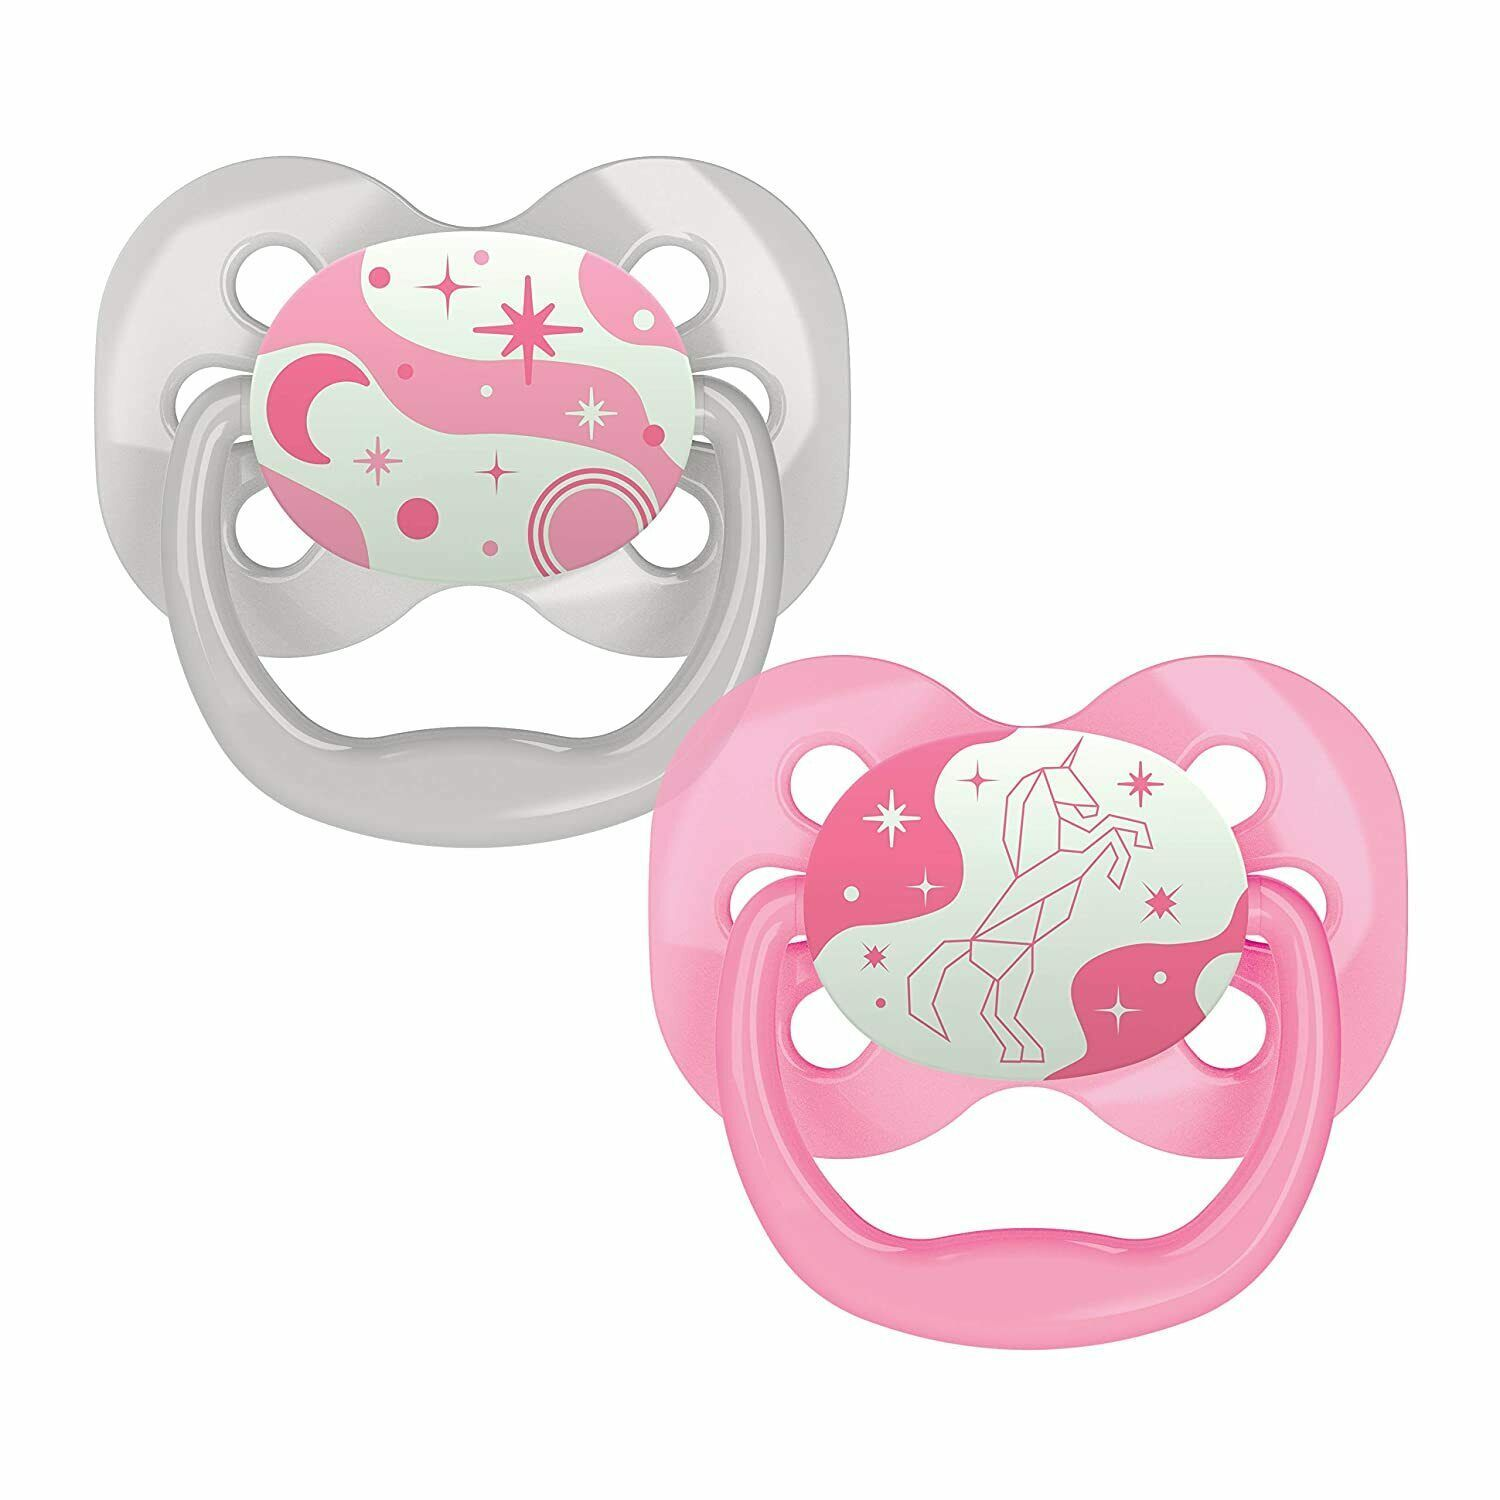 Dr. Brown's Advantage Glow-in-The-Dark 2 Piece Stage 1 Pacifiers Pink 0-6 Months - $8.02